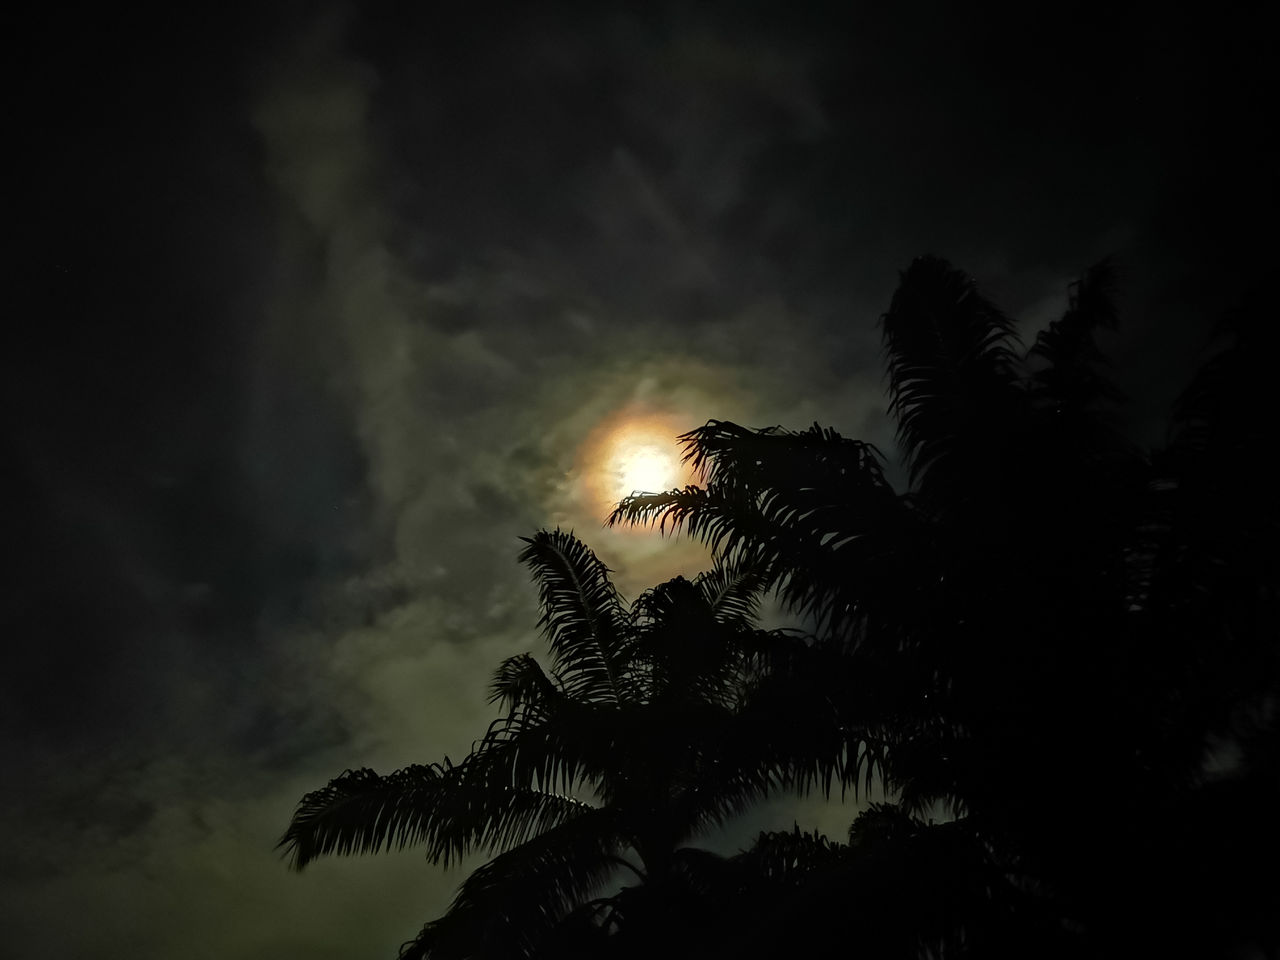 sky, palm tree, tree, tropical climate, silhouette, cloud - sky, beauty in nature, plant, low angle view, tranquility, nature, no people, growth, scenics - nature, sunset, tranquil scene, outdoors, night, idyllic, dark, palm leaf, coconut palm tree, moonlight